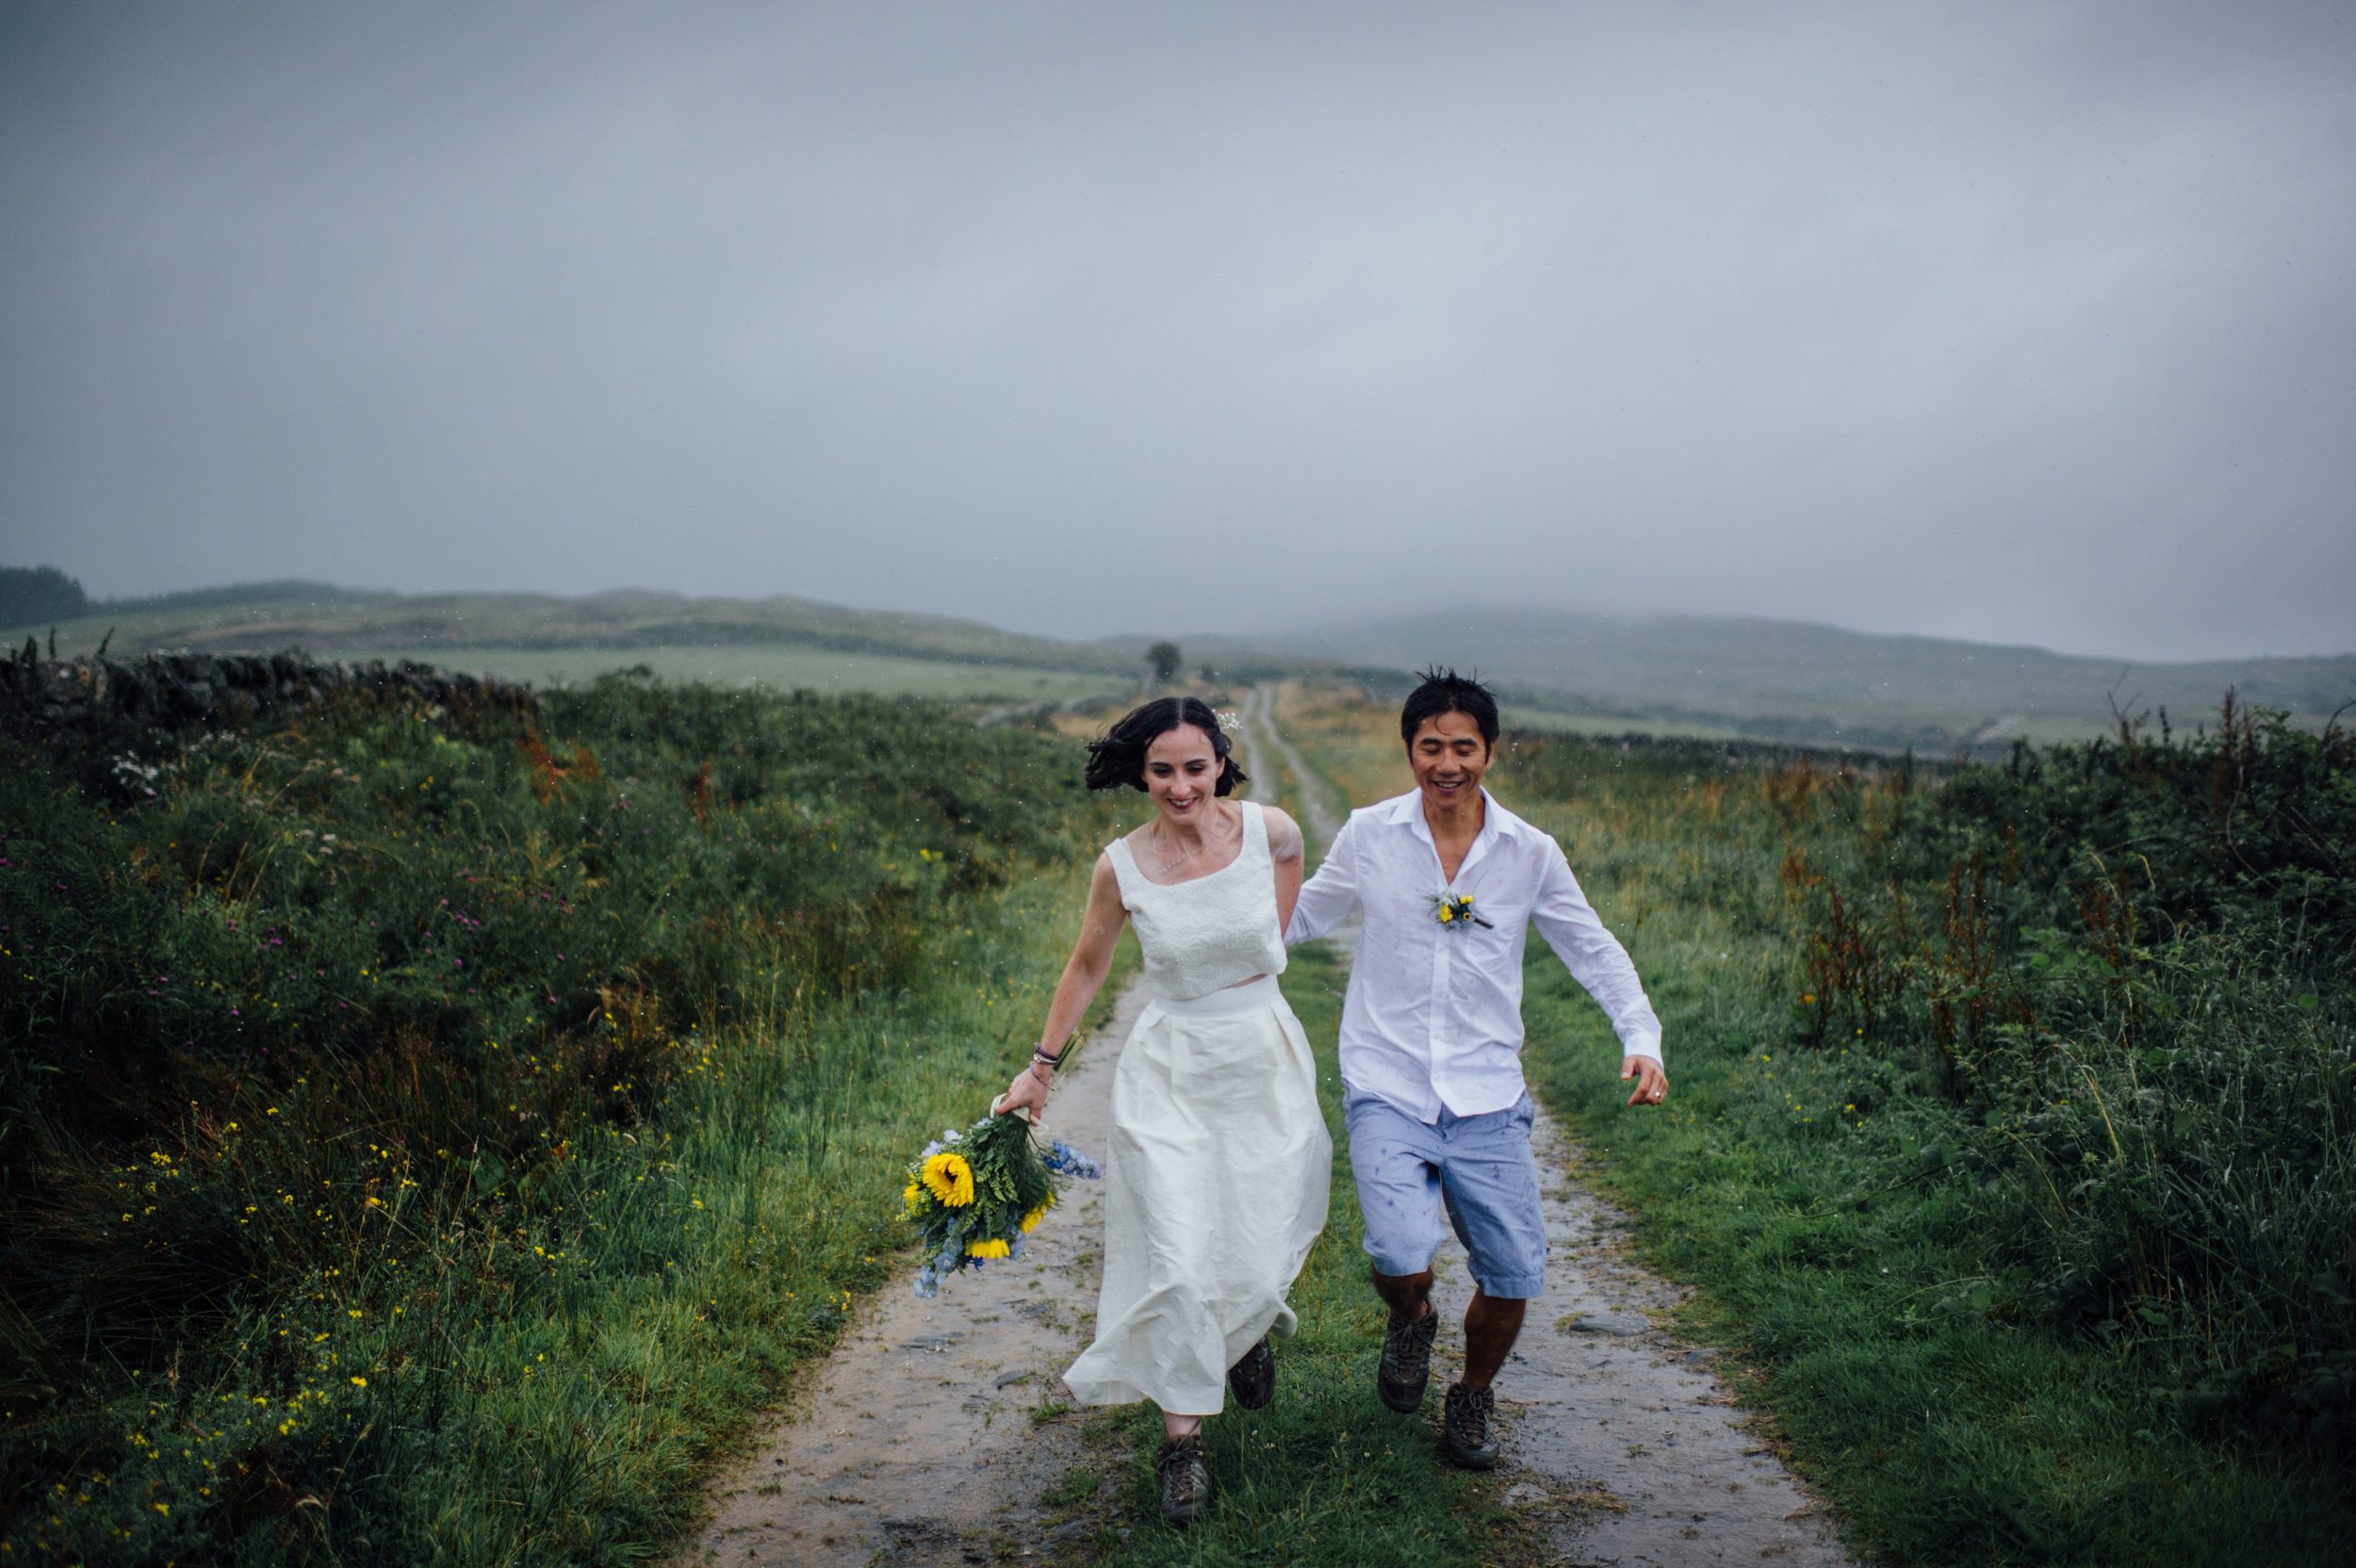 185-lisa-devine-photography-alternative-creative-wedding-photography-glasgow-crear-scotland-uk.JPG